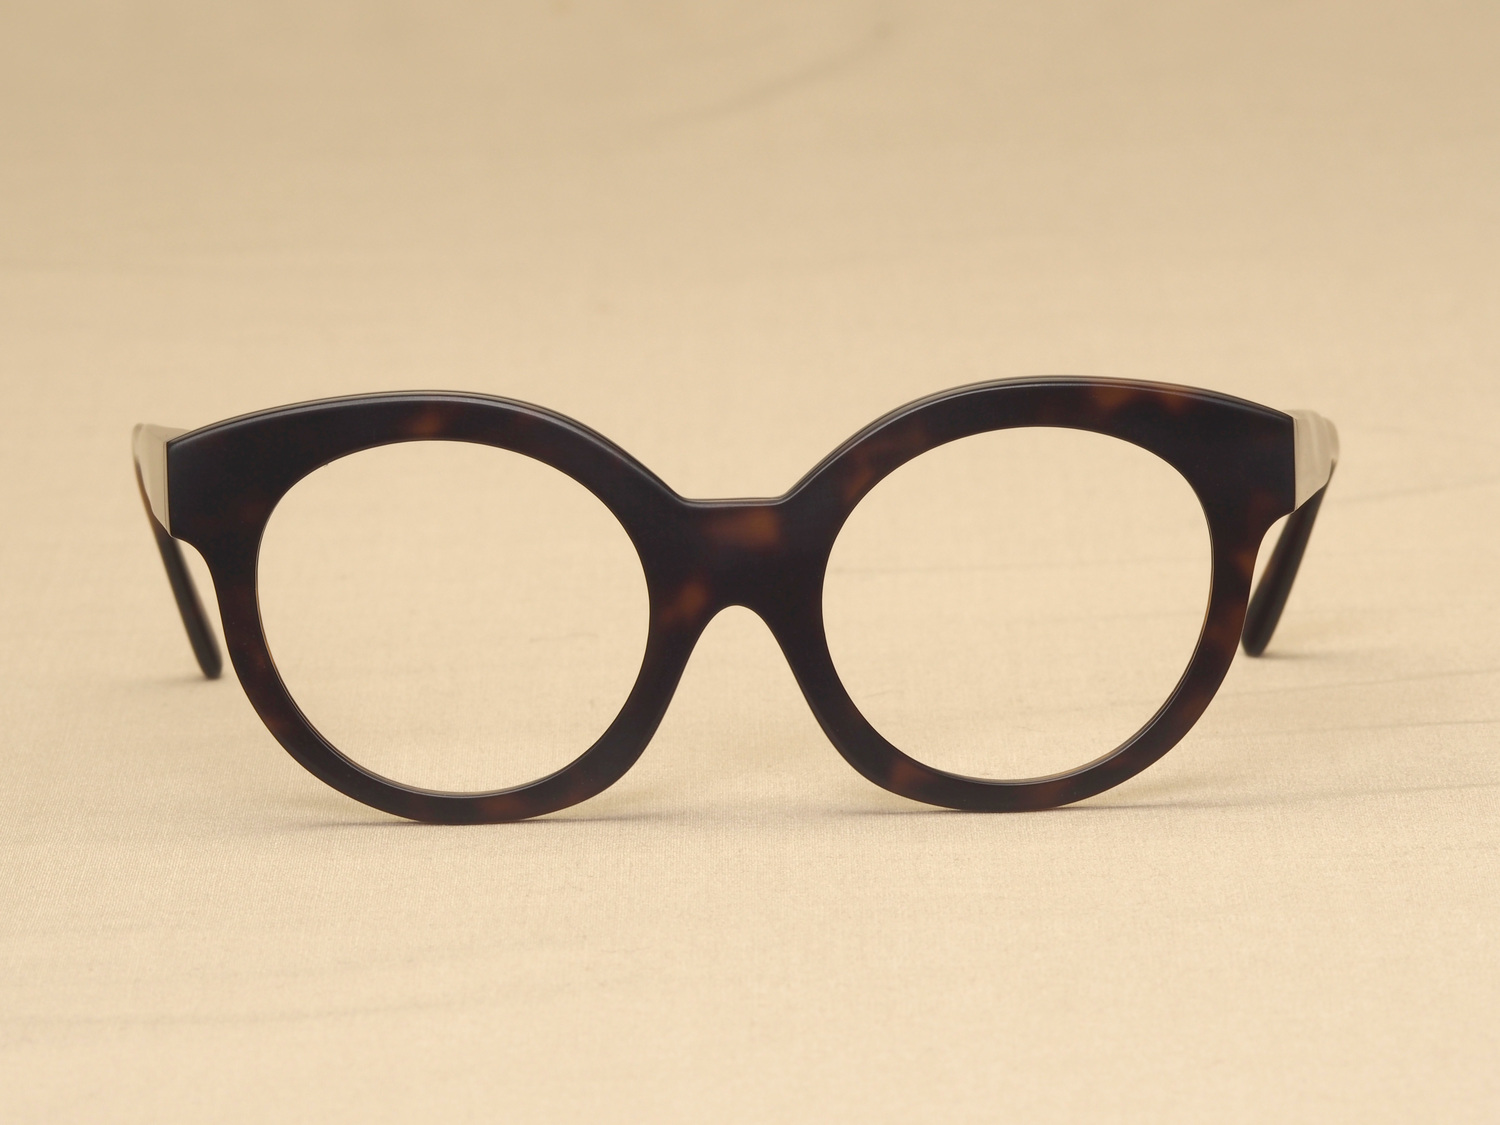 Indivijual-Custom-Glasses-14.jpg